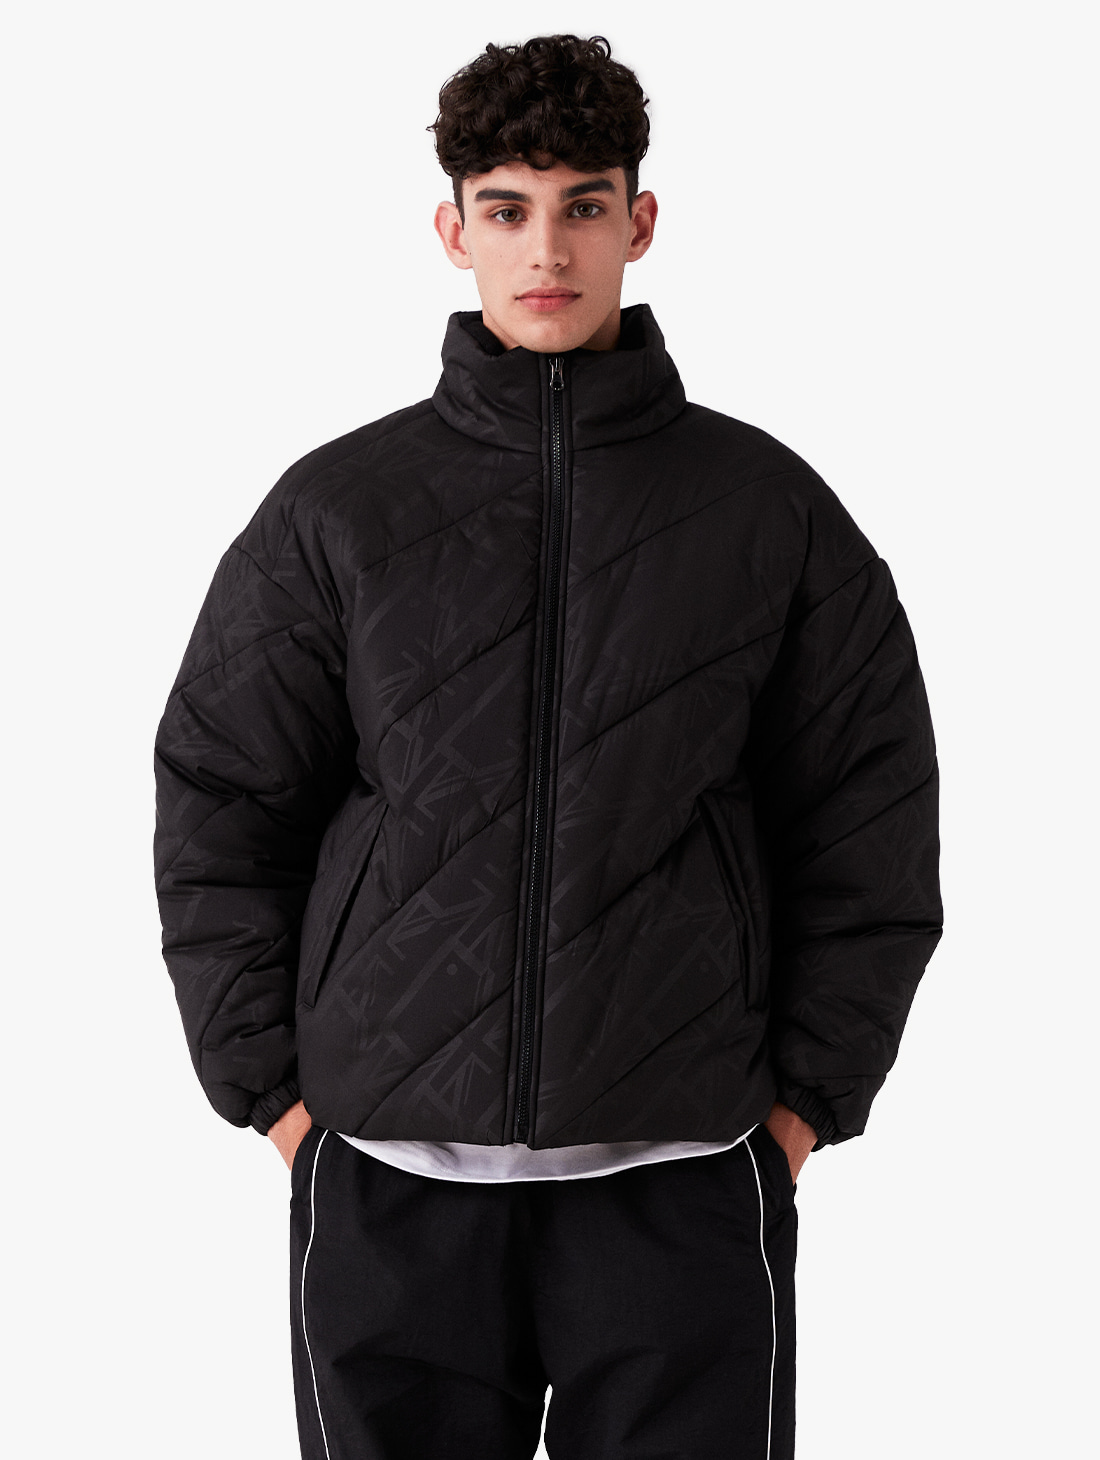 GOALSTUDIO [PRE-ORDER 10% OFF] WWFC DIAGONAL EMBO PADDED JACKET